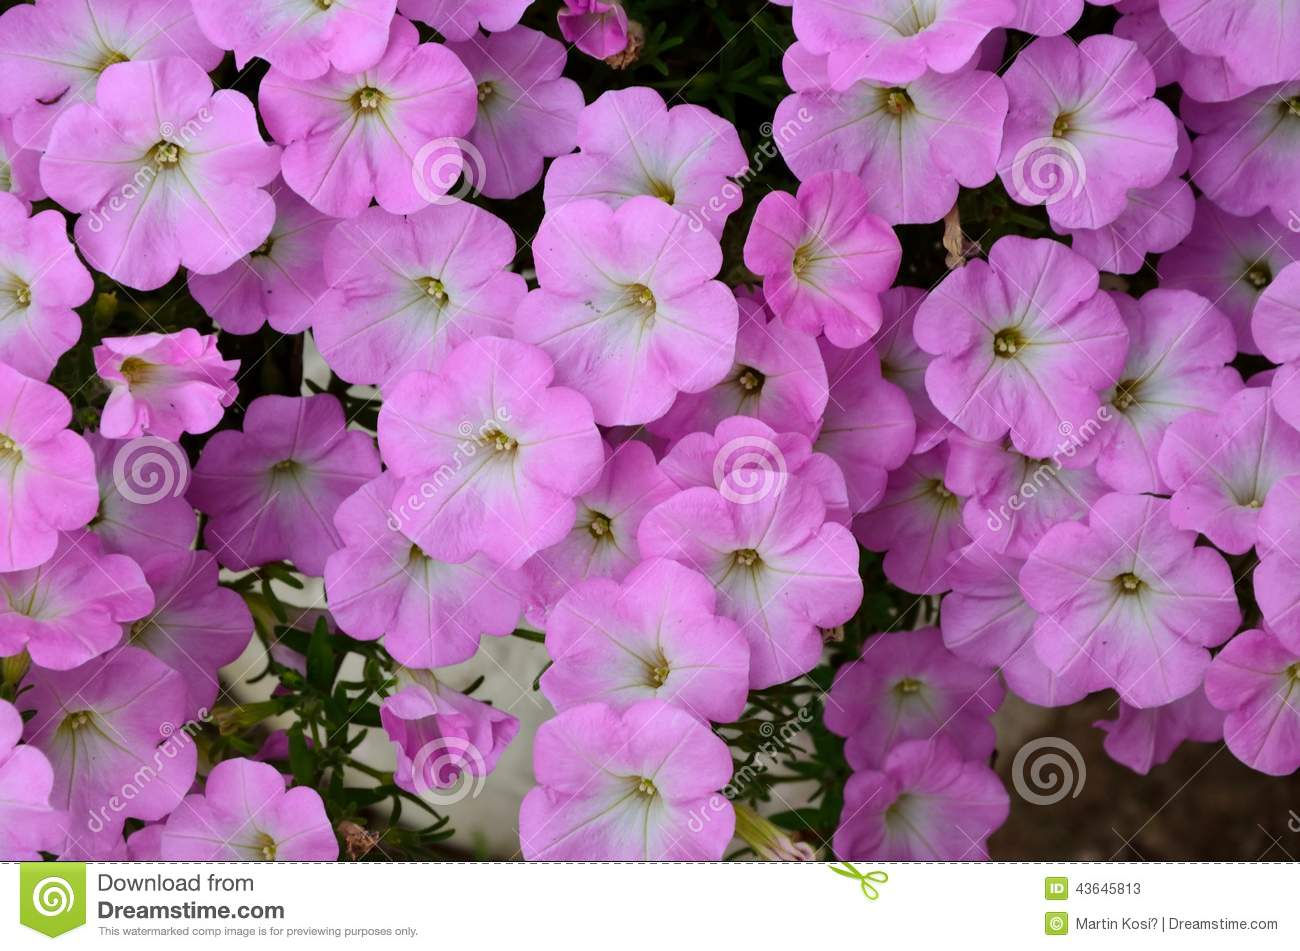 Background Of Pink Flowers Stock Image Image Of Fresh 43645813